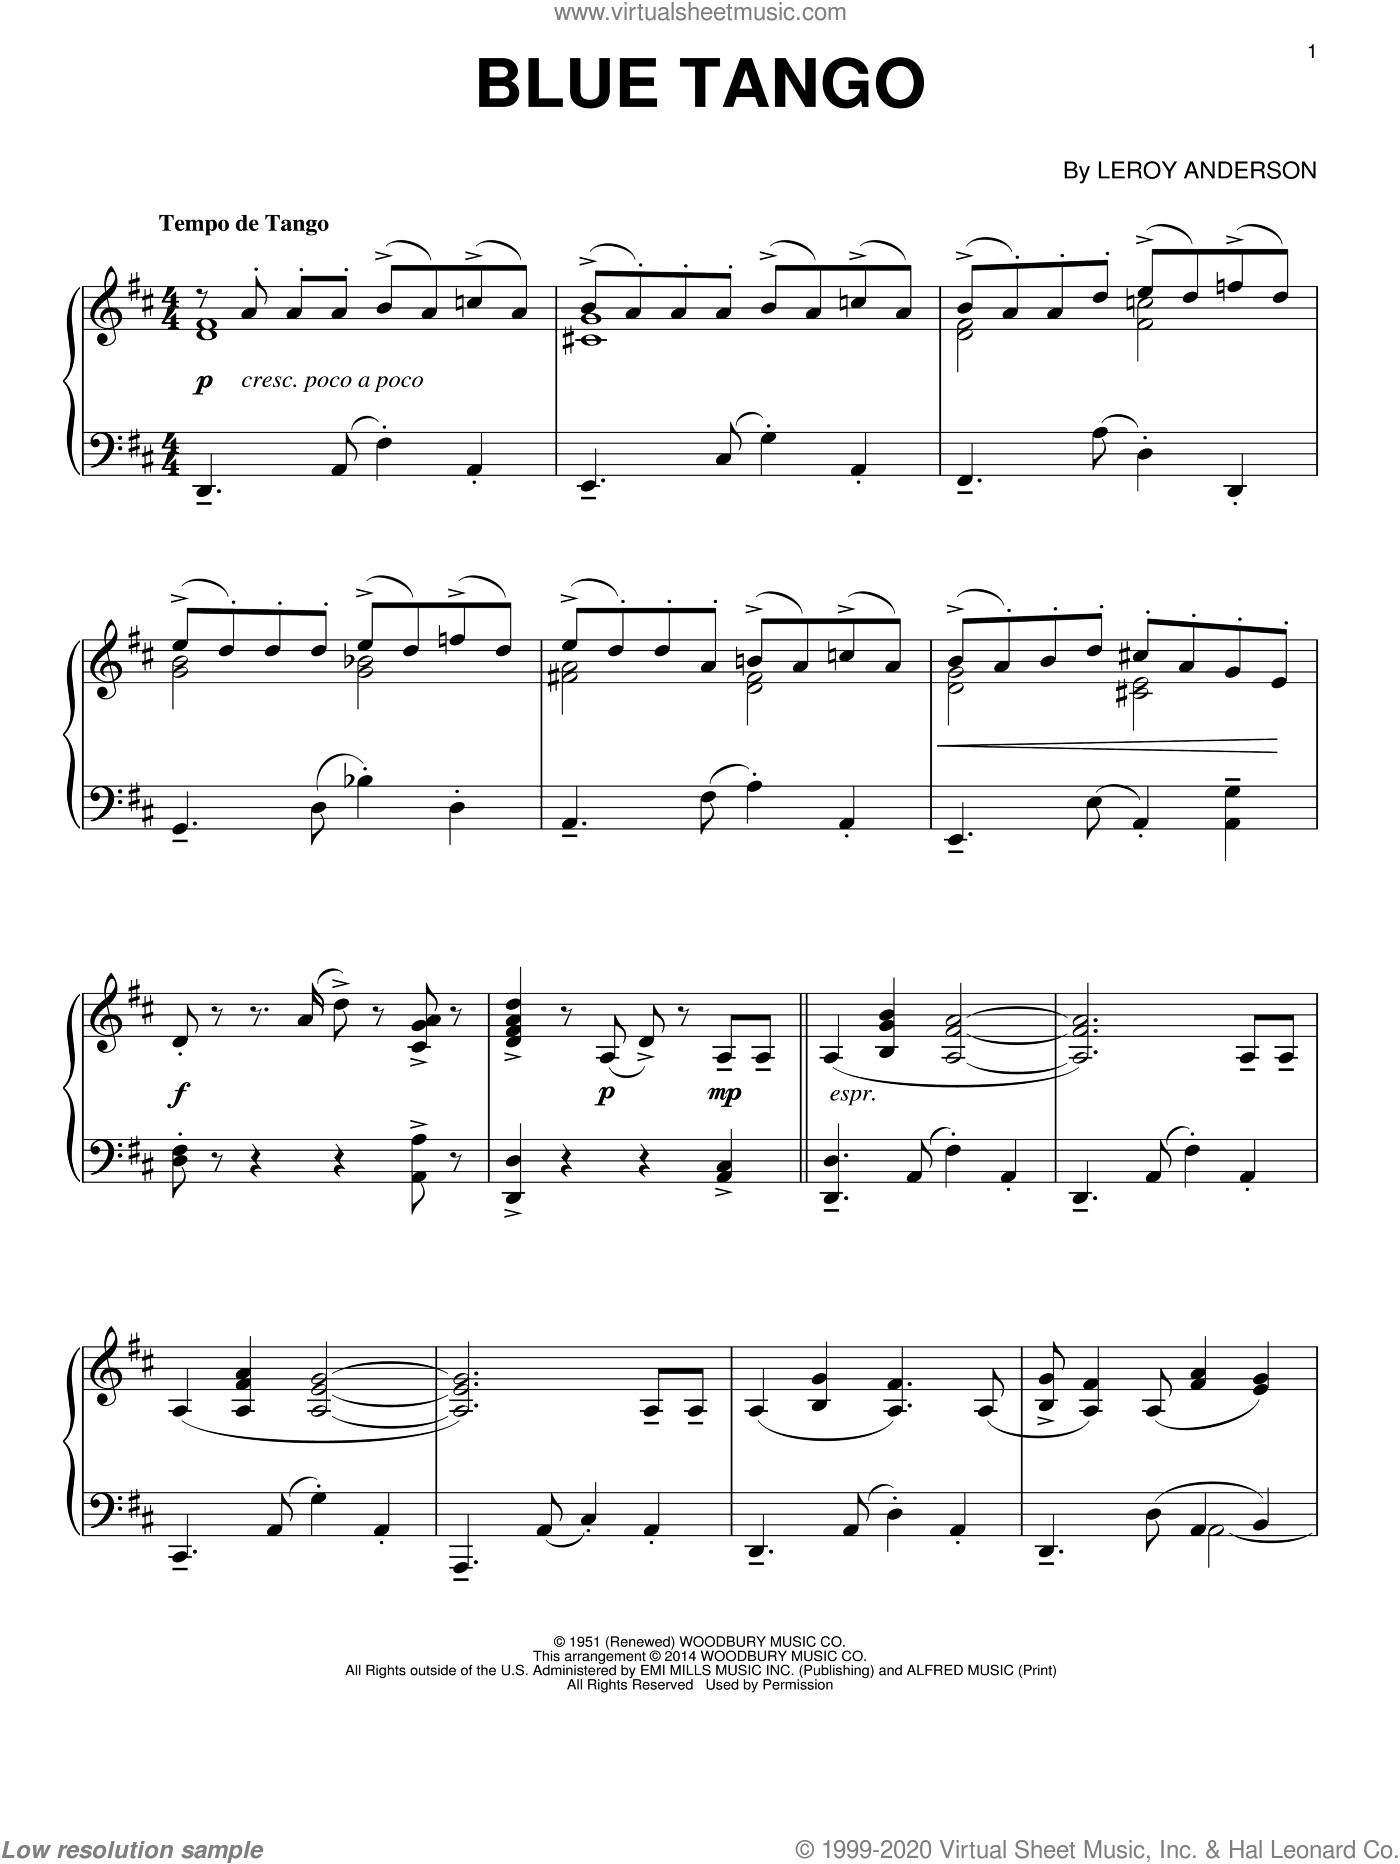 Blue Tango sheet music for piano solo by Leroy Anderson, intermediate skill level